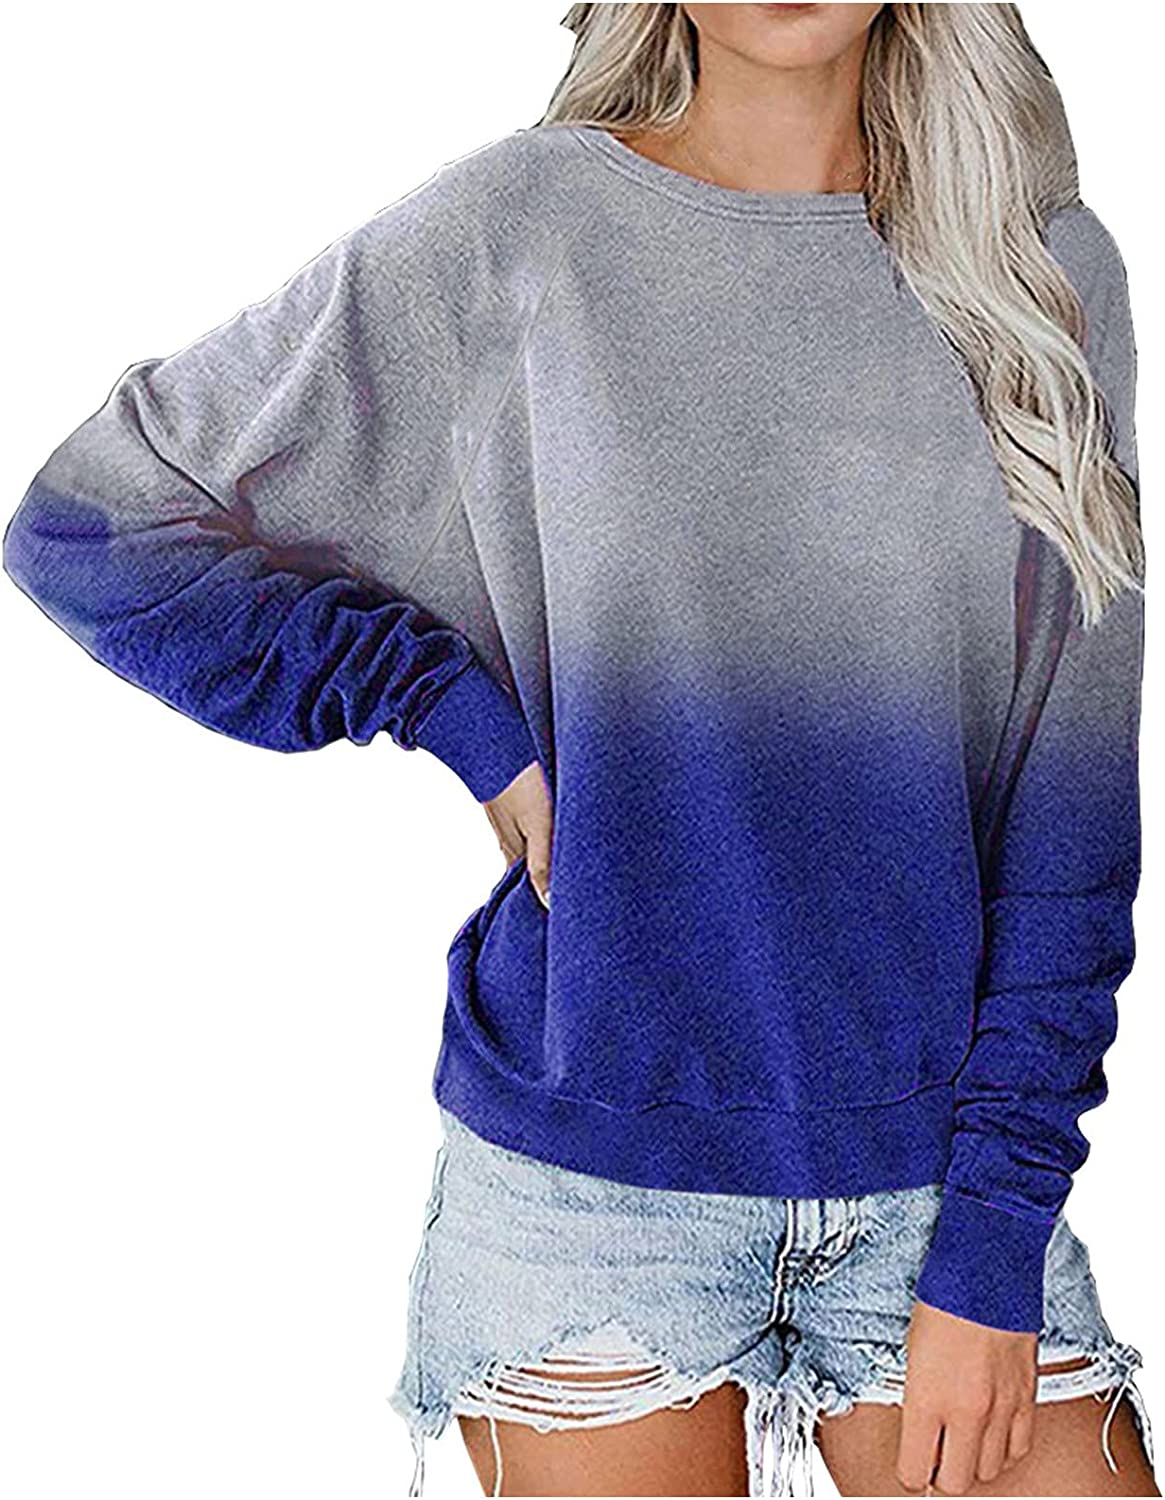 Loose Sweatshirts for Women, Women's Casual Crew Neck Long Sleeve Gradient Color-Block Pullover Blouse Tops